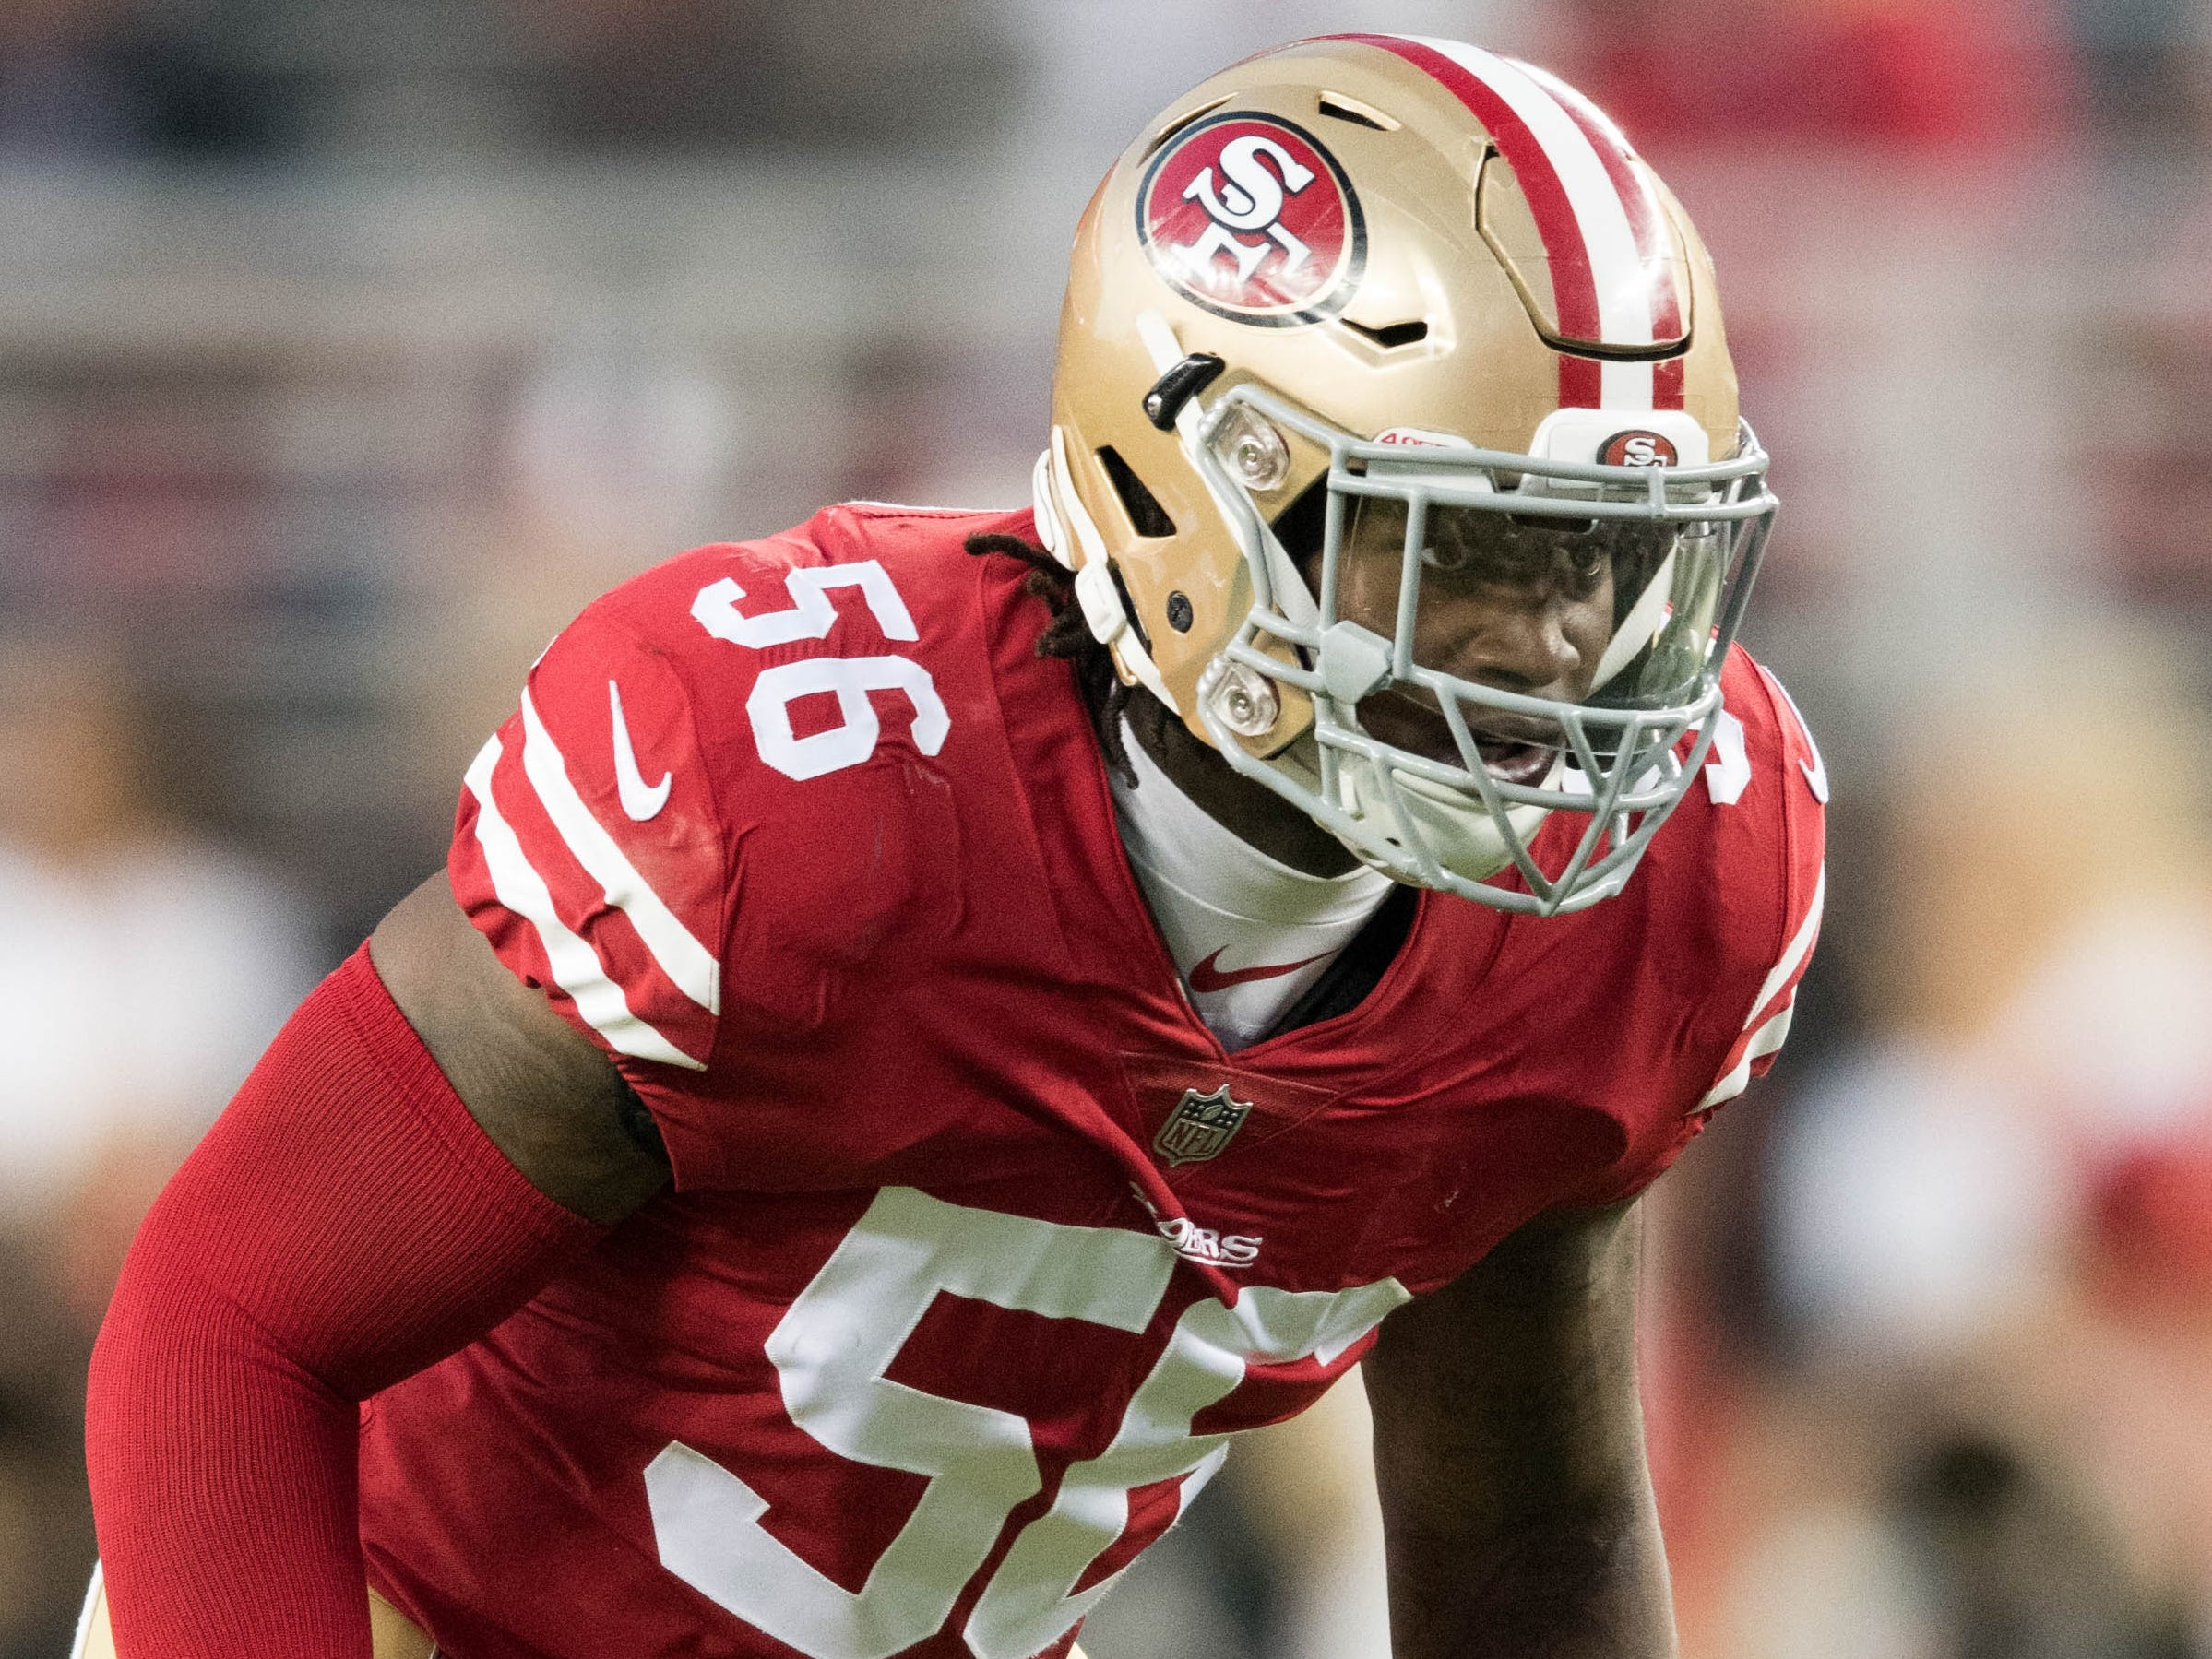 30. 49ers (30): Latest chapter of 2018 debacle occurred over weekend when troubled LB Reuben Foster essentially forced team to cut cord after yet another arrest.